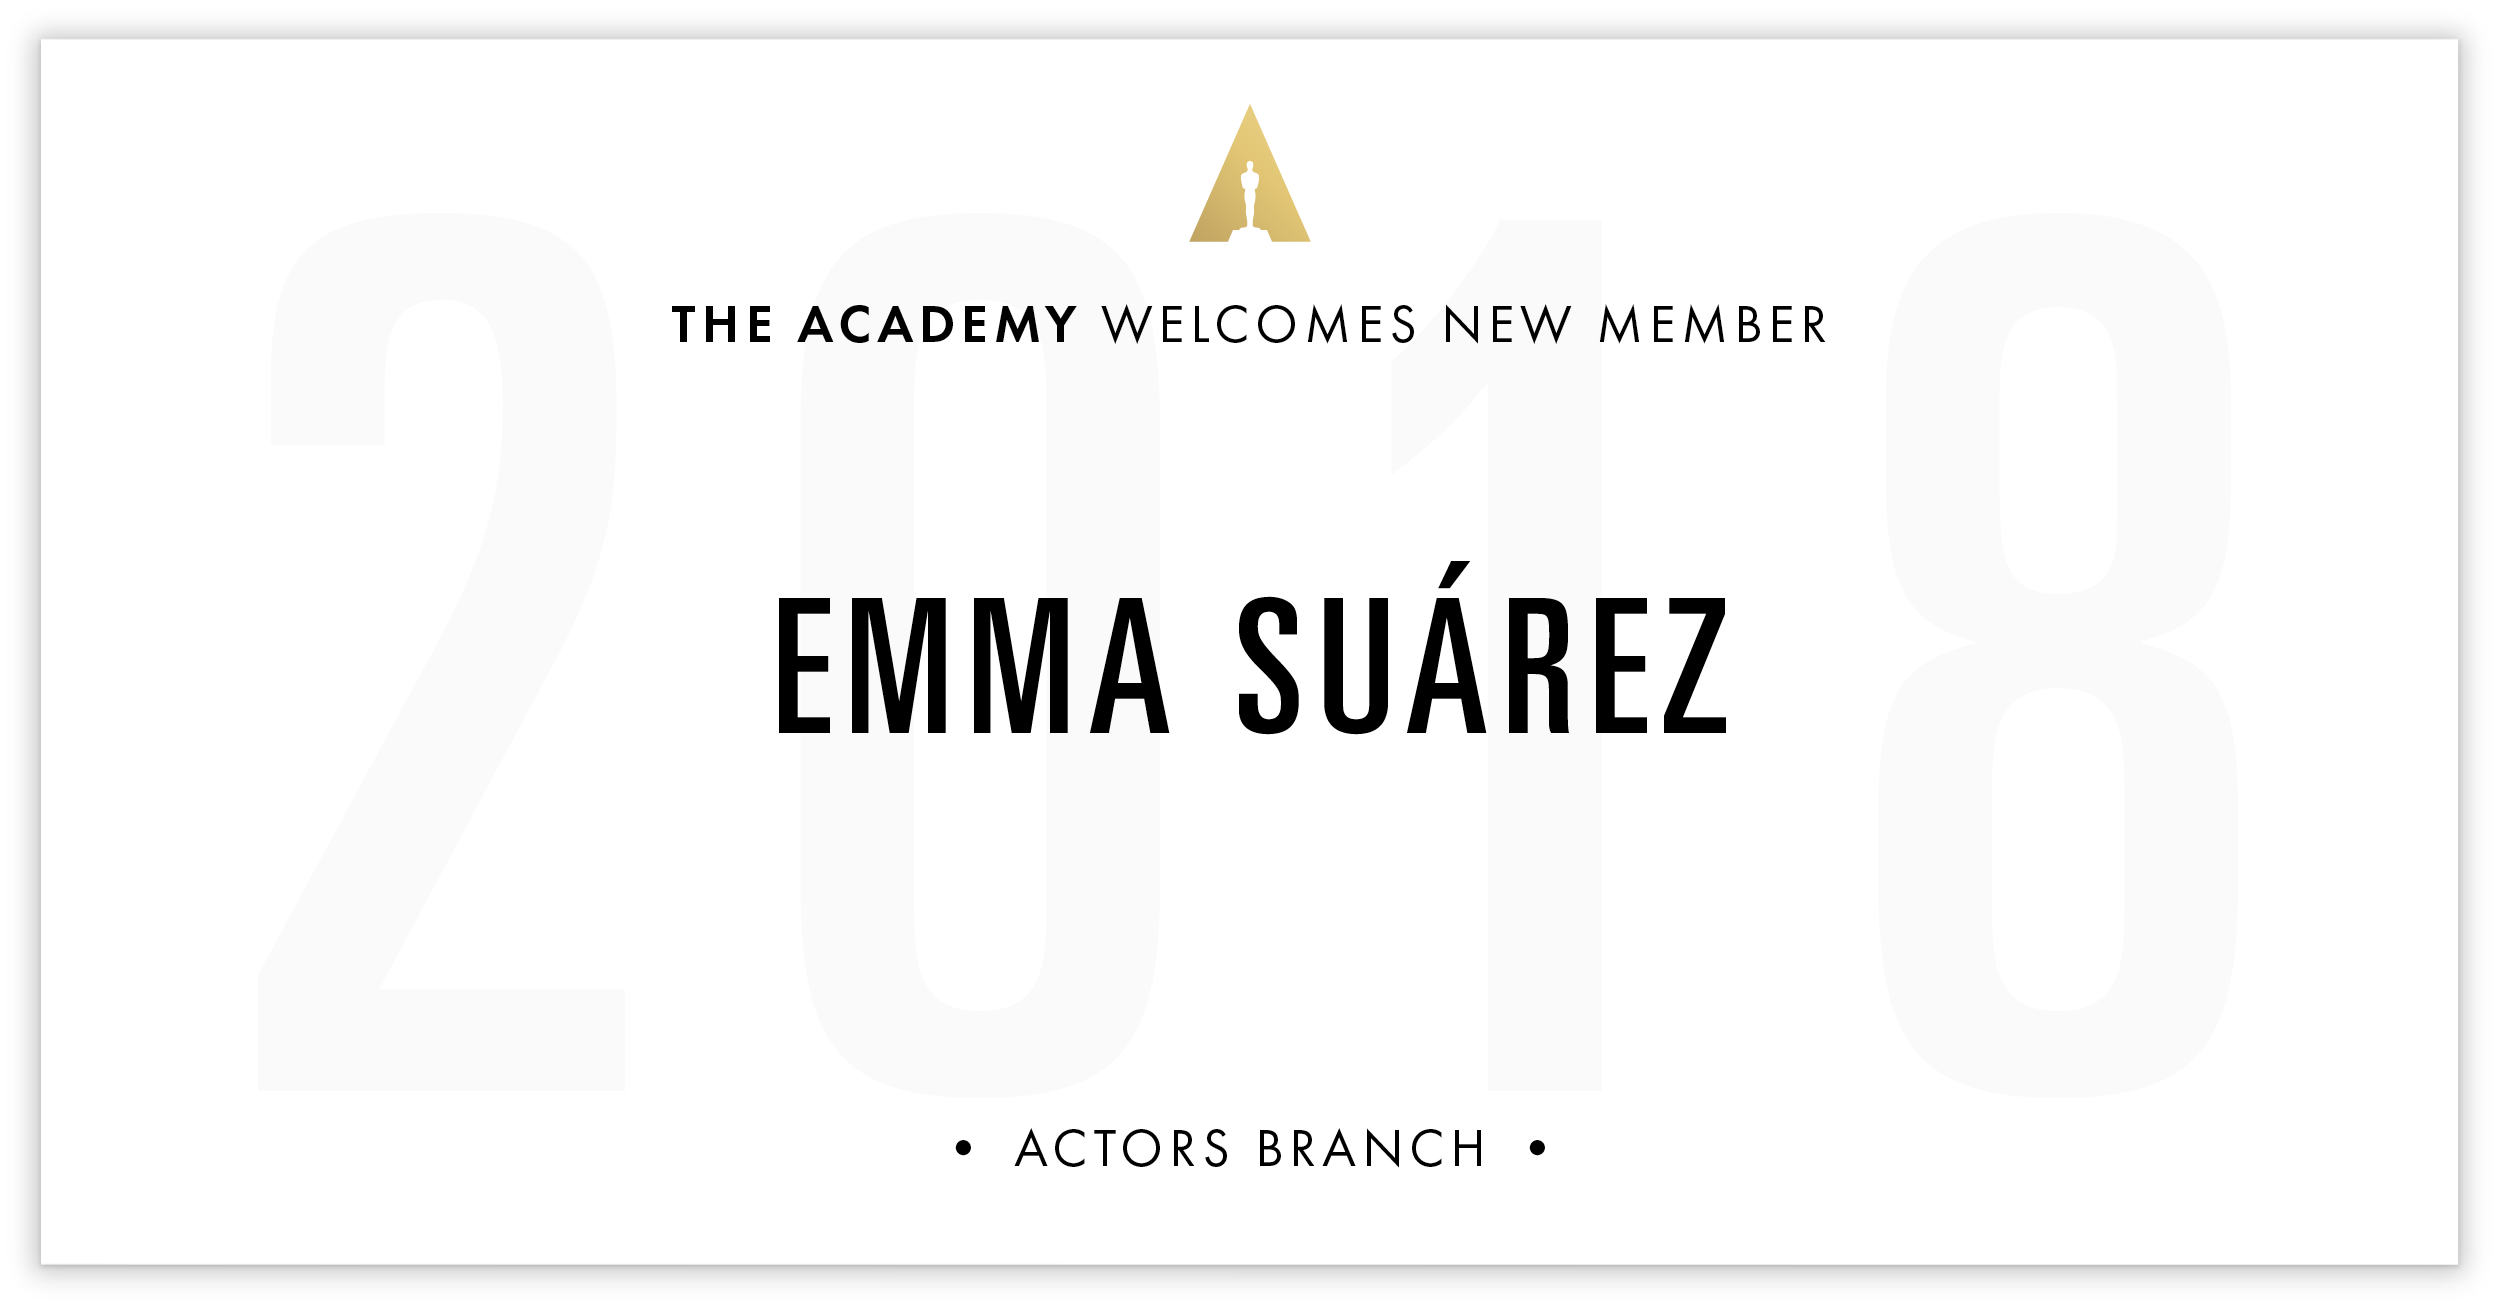 Emma Suárez is invited!